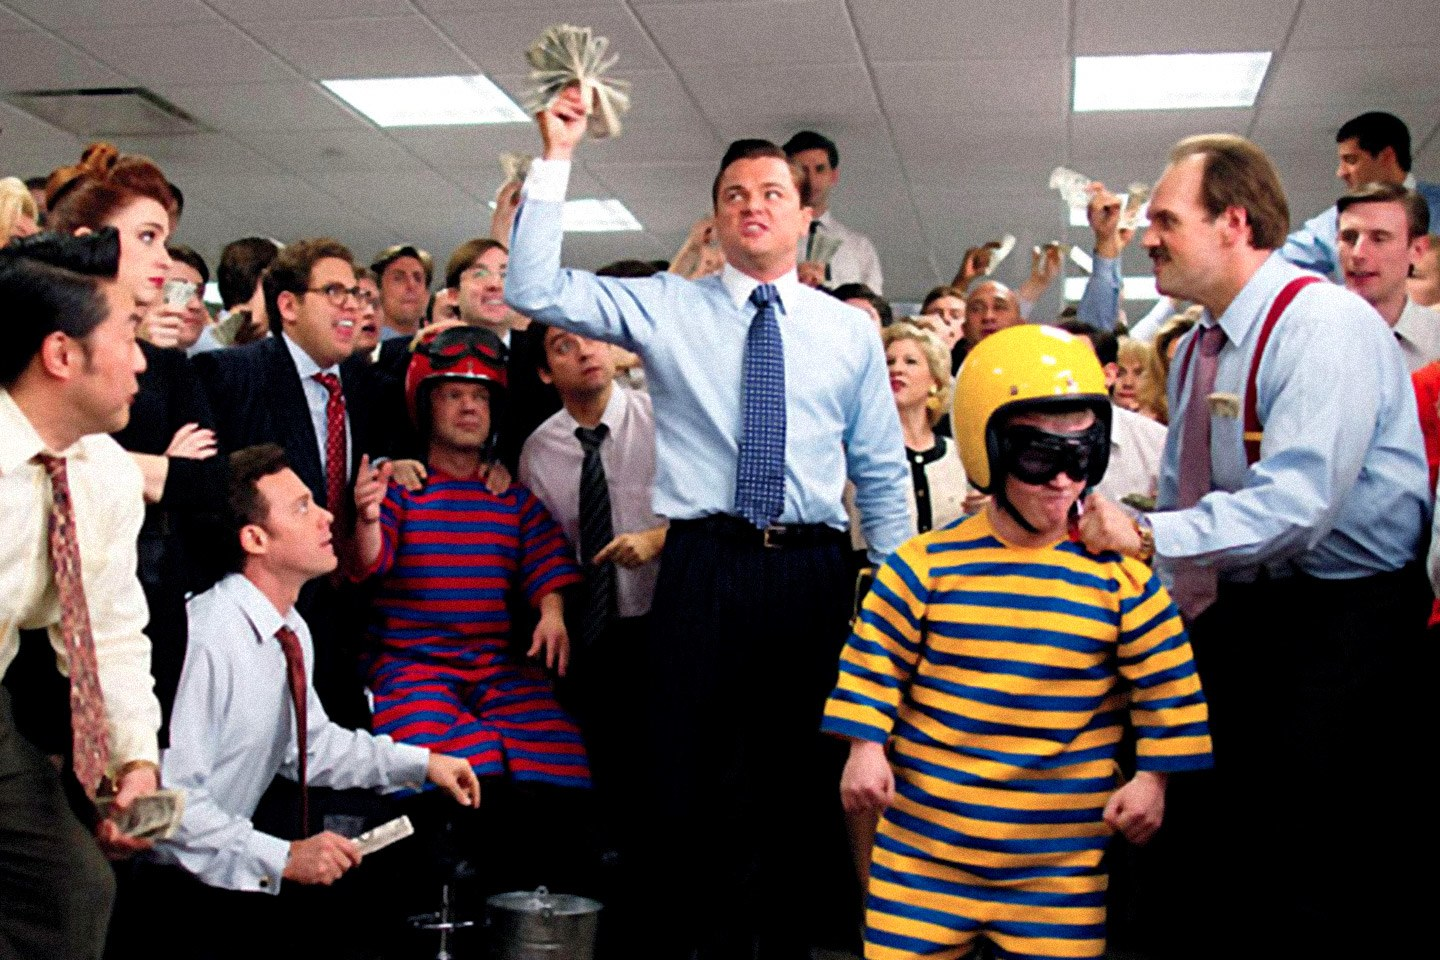 movies-netflix-india-everyone-must-watch-atleast-once-their-lives-the-wolf-of-wall-street_image